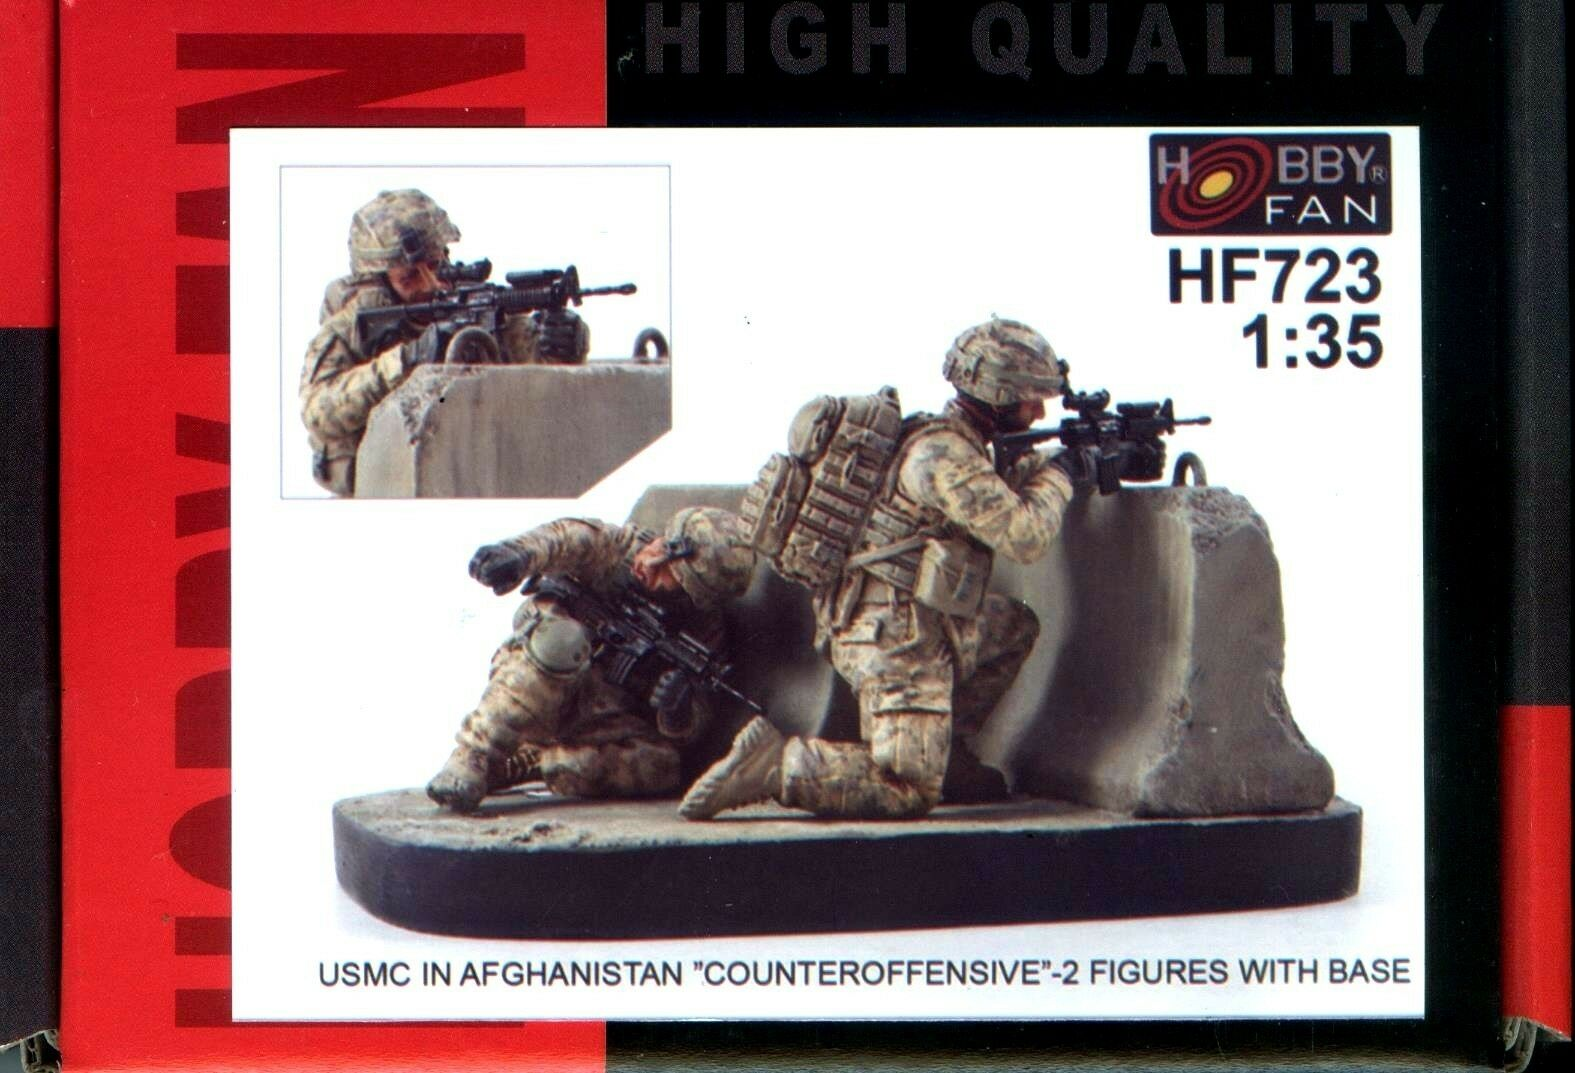 Hobby Fan 1 35 HF-723 USMC in Afghanistan  Counteroffensive  - 2 Figures w Base